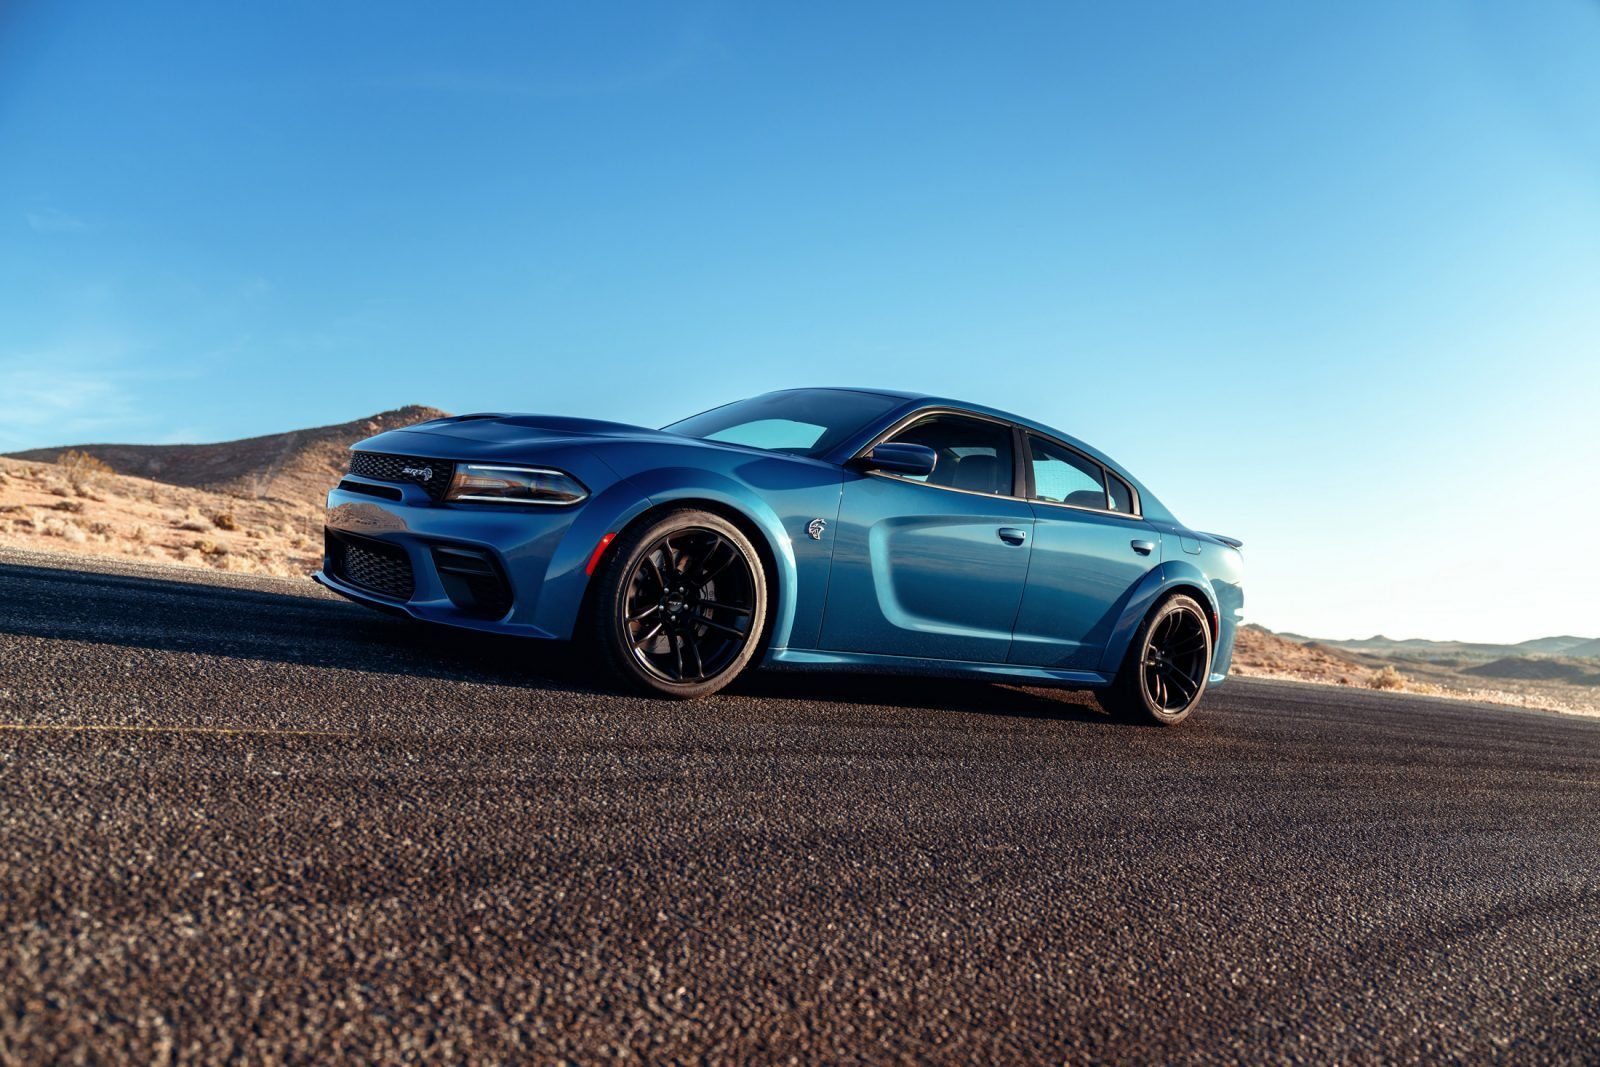 Dodge Unveils Wild 2020 Charger Widebody Scat Pack And Hellcat Models Video Latest News Car Revs Daily Com Dodge Charger Charger Srt Dodge Charger Srt